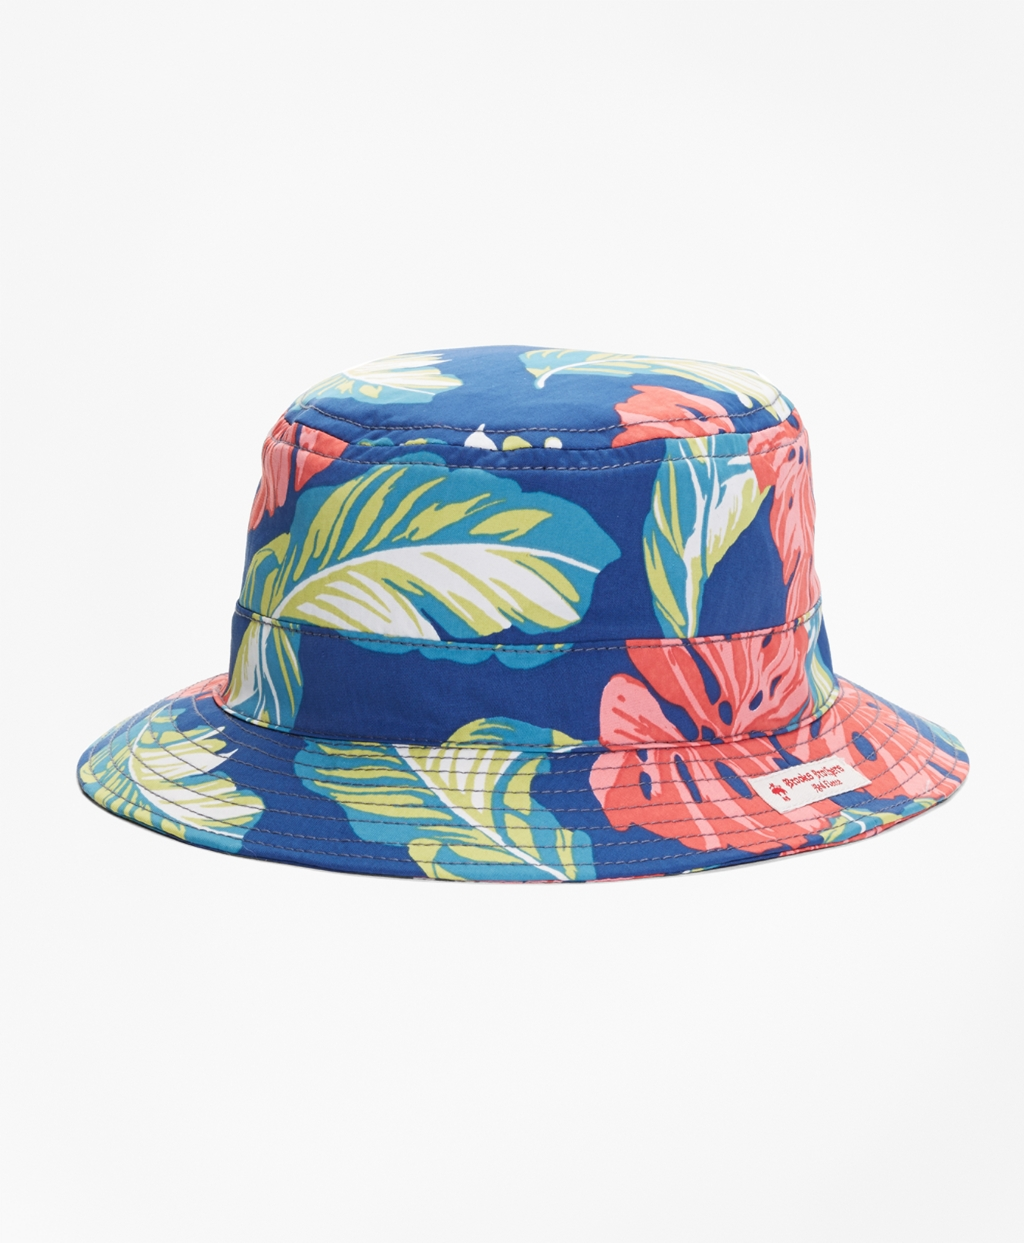 3fdfe2c99ec ... where can i buy on trend bucket hats bumbags c31c4 ff212 where to buy  tropical ...